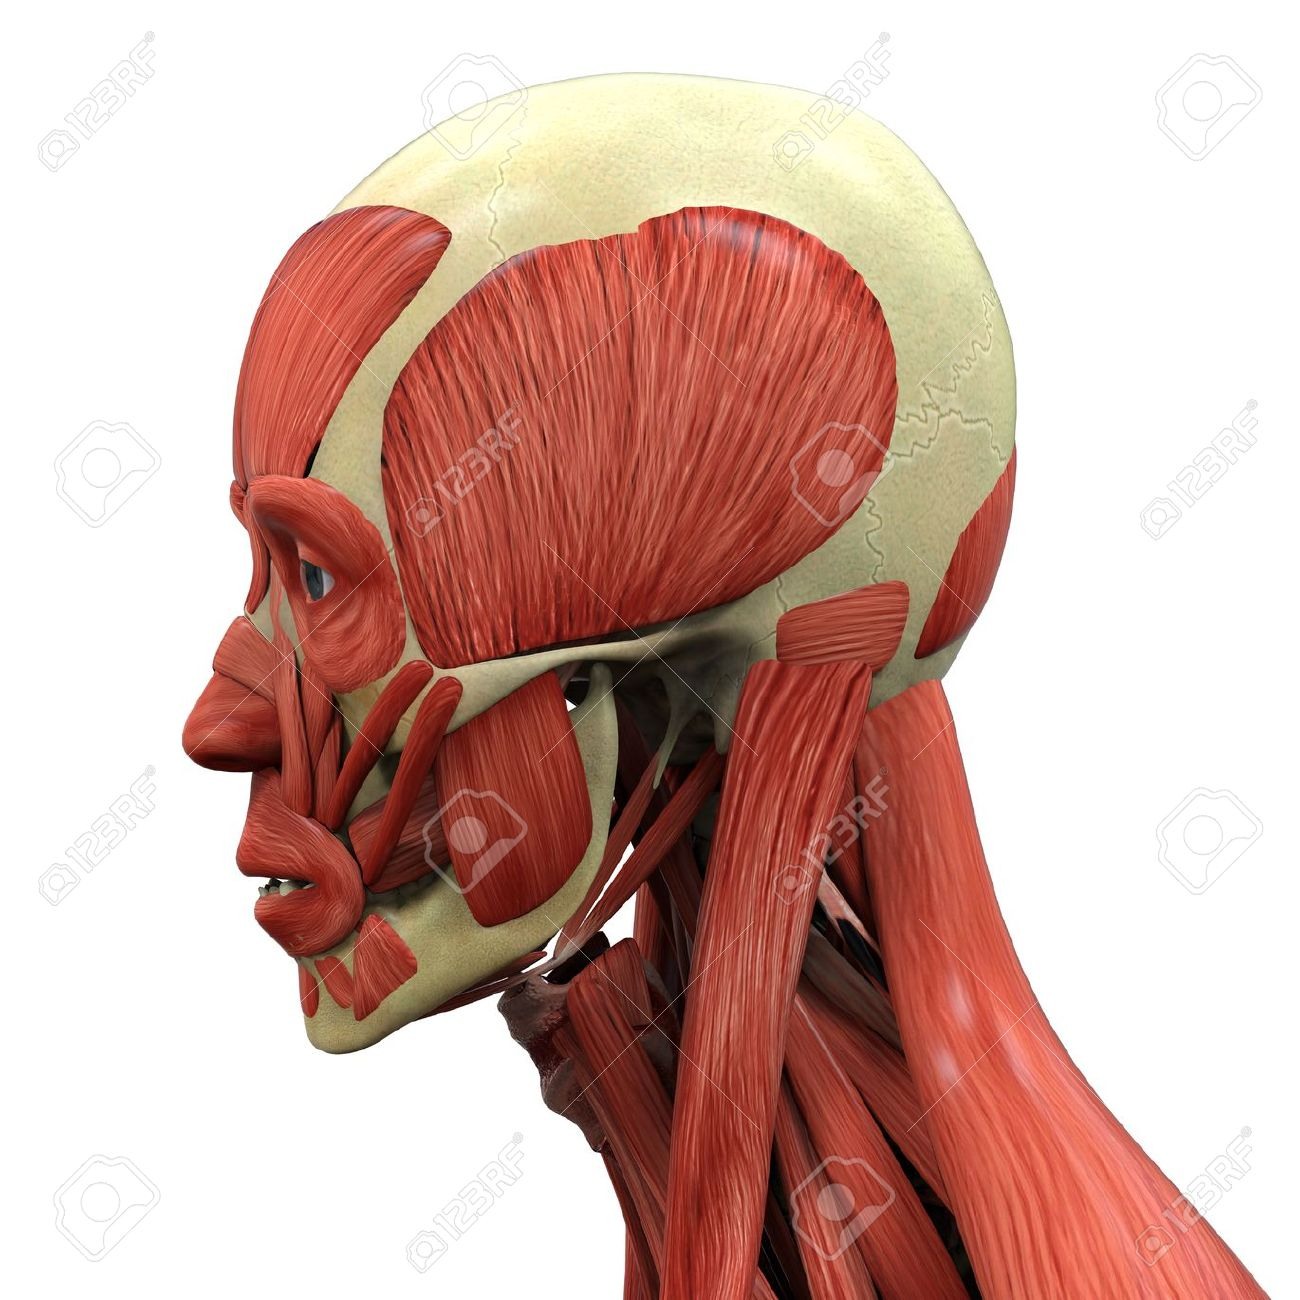 Human Face Anatomy Stock Photo Picture And Royalty Free Image